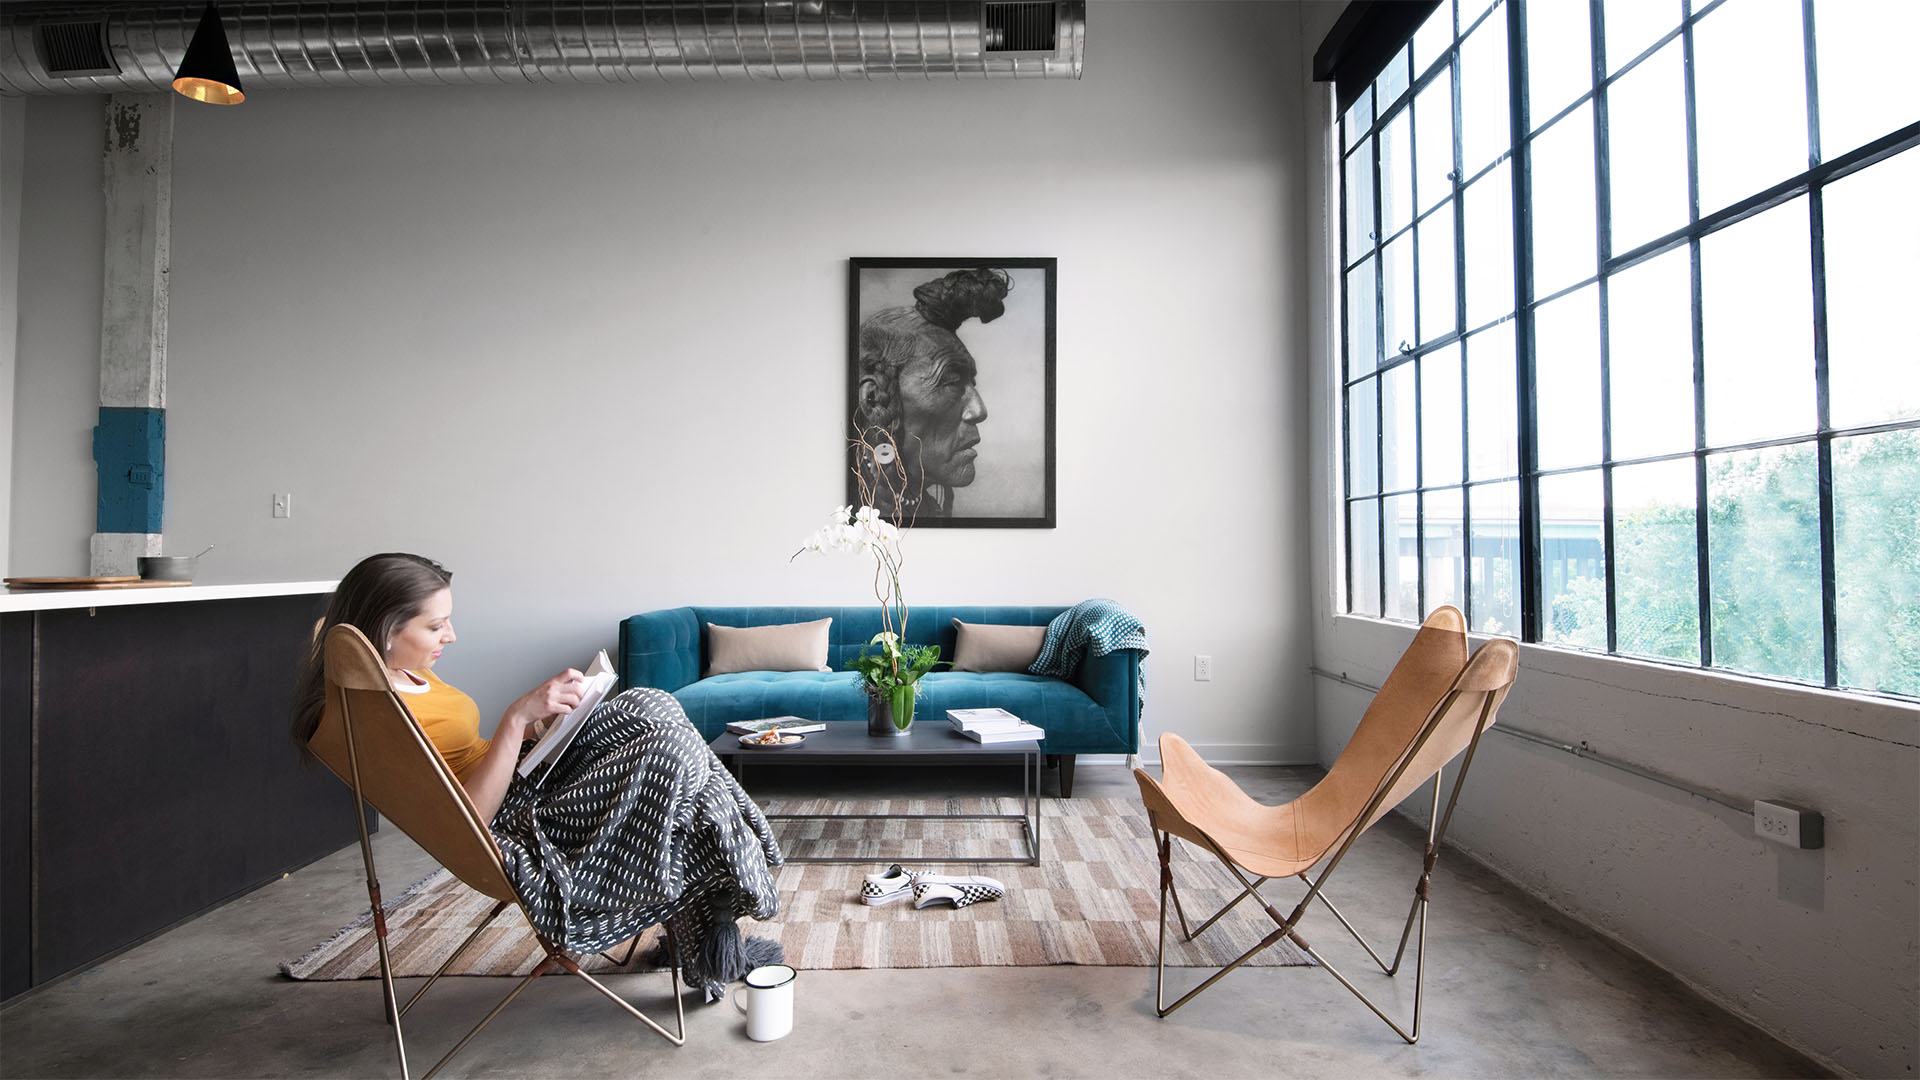 Living room with ample seating and floor to ceiling windows at The Denham Building loft apartments for rent in South Birmingham, AL